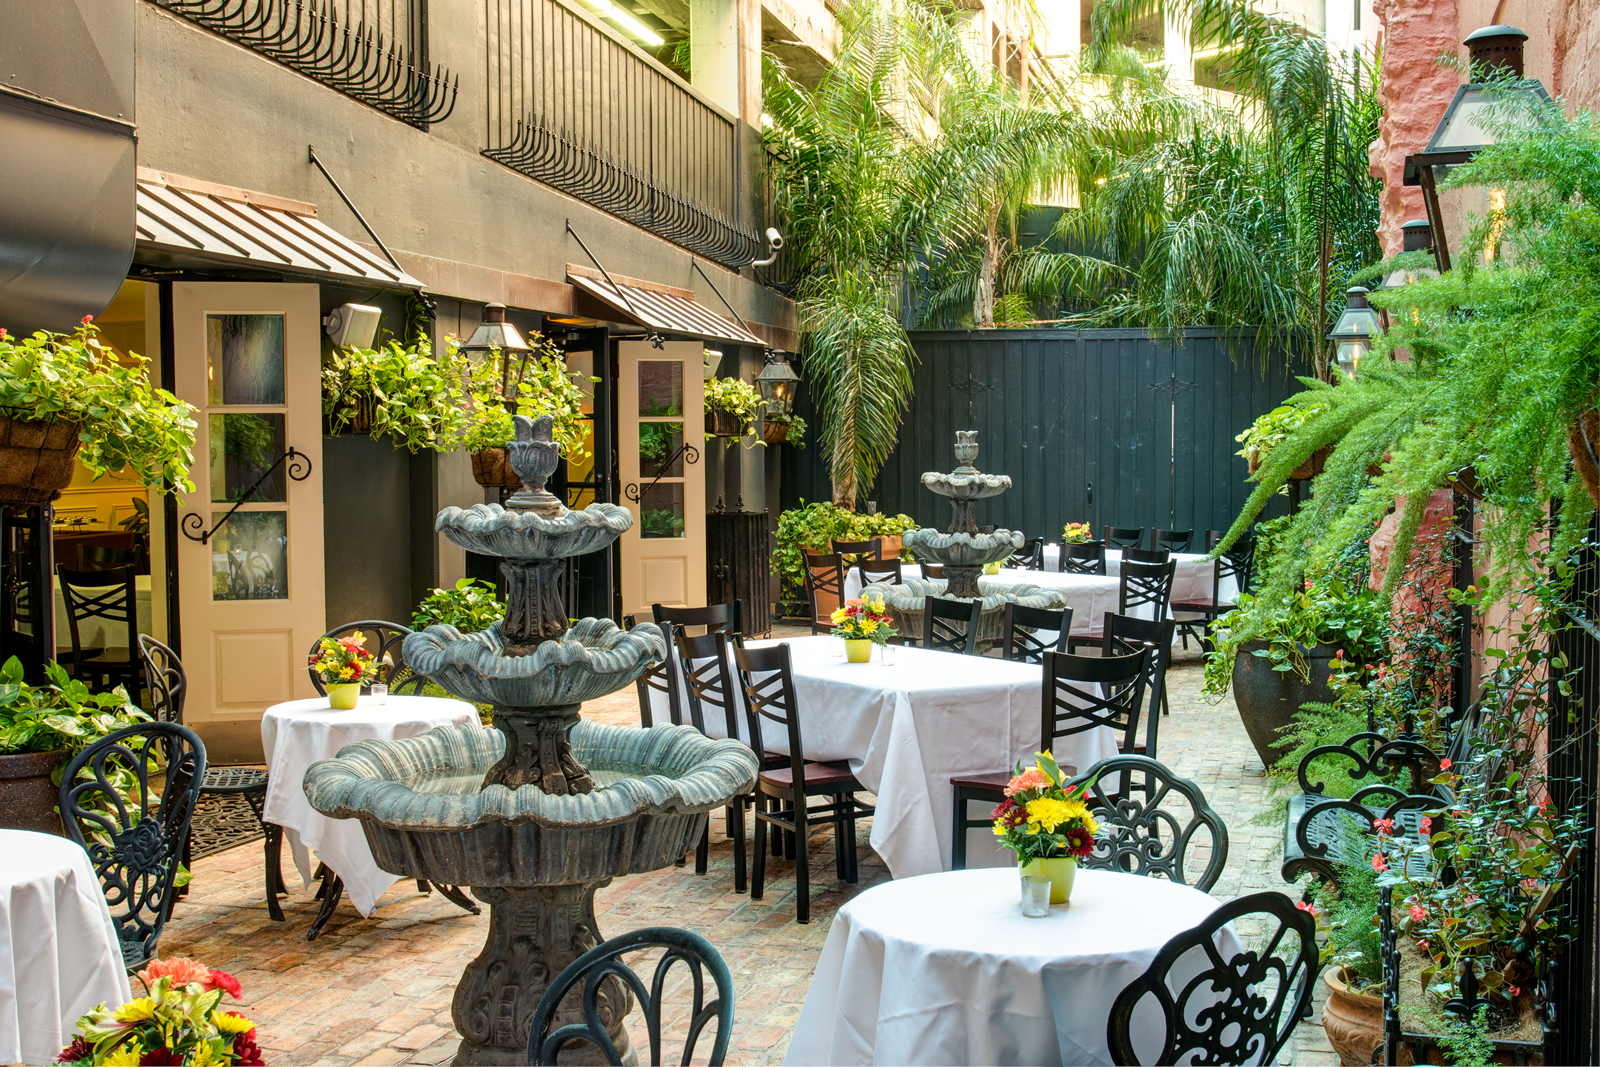 French Quarter Private Party Venue with courtyard in New Orleans Louisiana